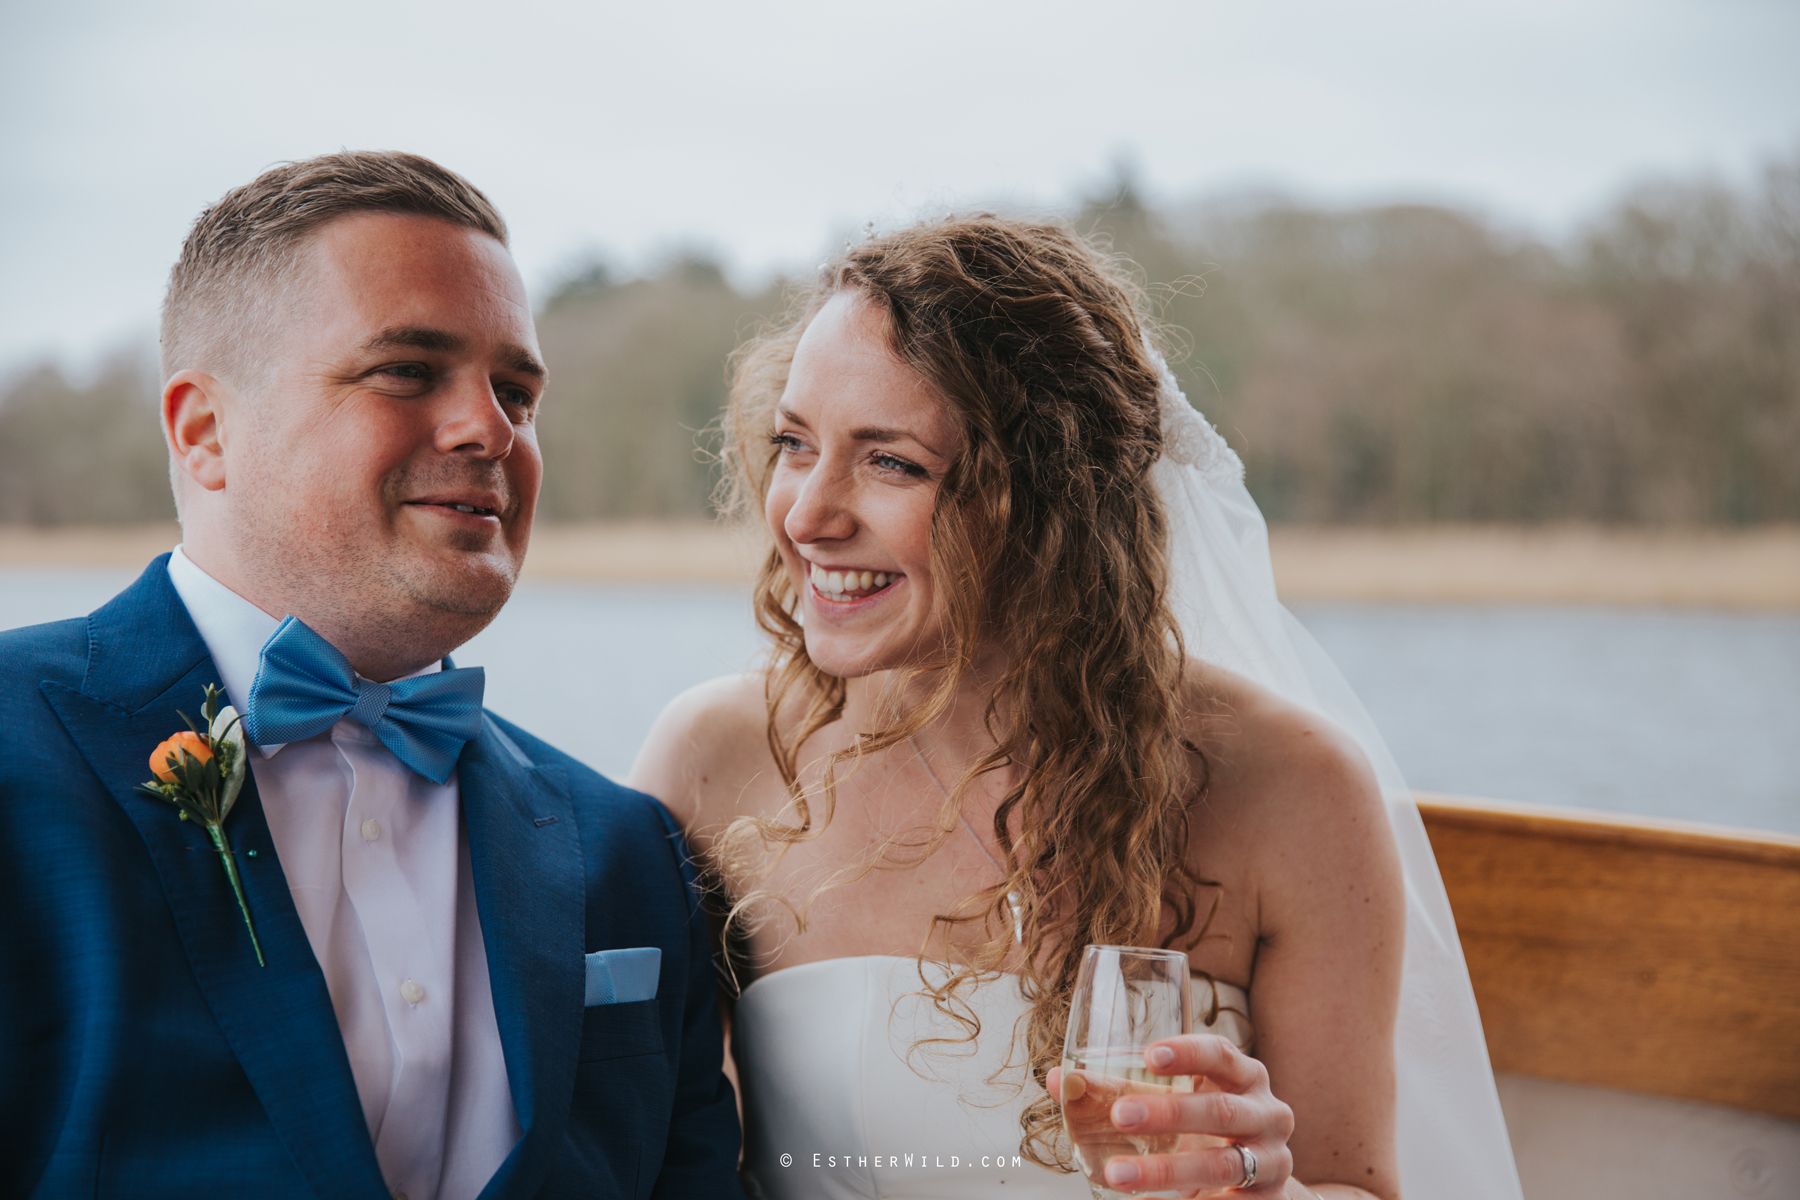 The_BoatHouse_Wedding_Venue_Ormesby_Norfolk_Broads_Boat_Wedding_Photography_Esther_Wild_Photographer_IMG_1574.jpg